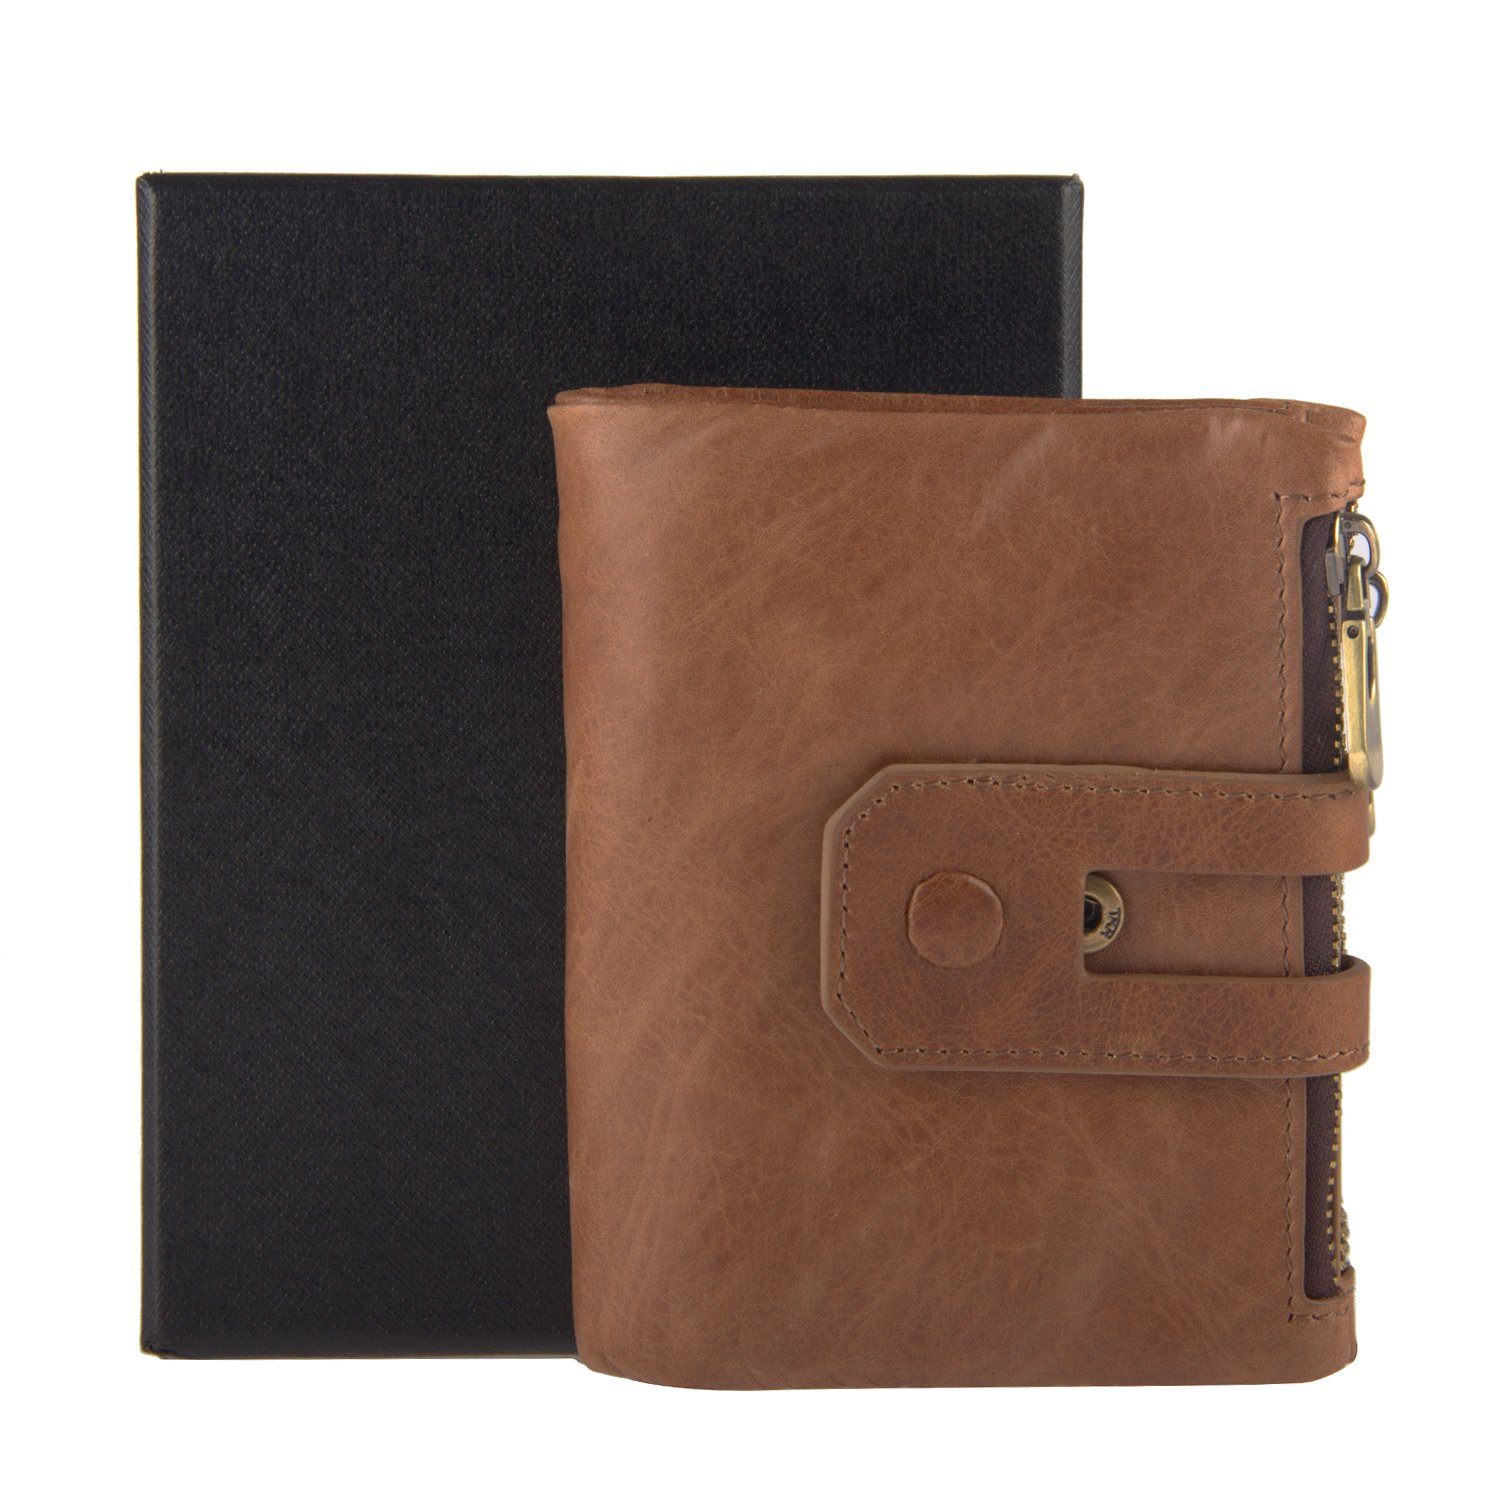 Mens RFID Blocking Wallet, Betiteto Genuine Leather Bifold Wallet Travel Short Purse Card Holder Coin Pocket Newest Designed with Gift Box (Coffee)